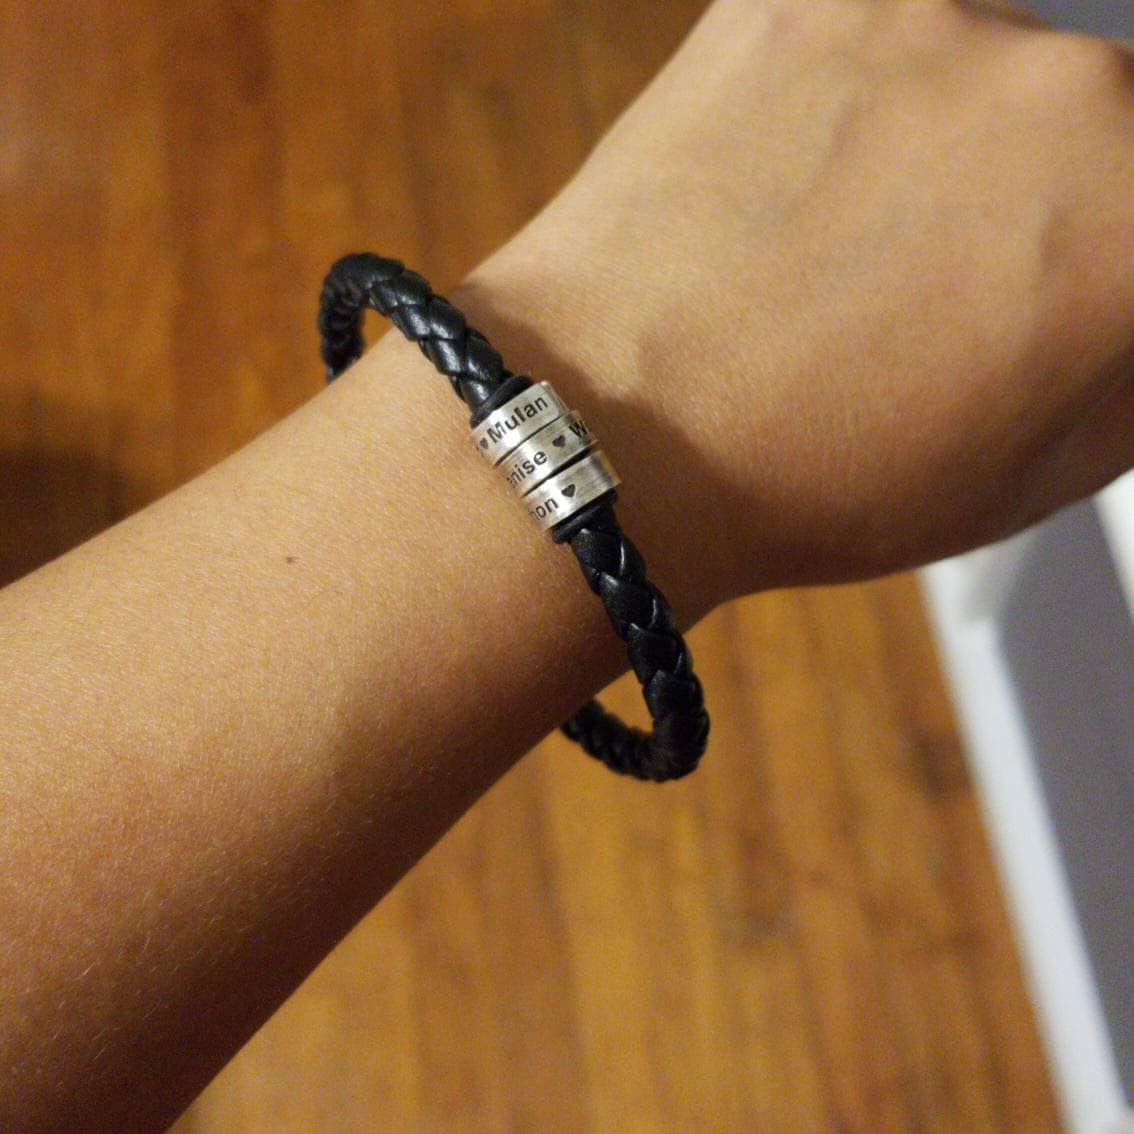 Abril Caro added a photo of their purchase